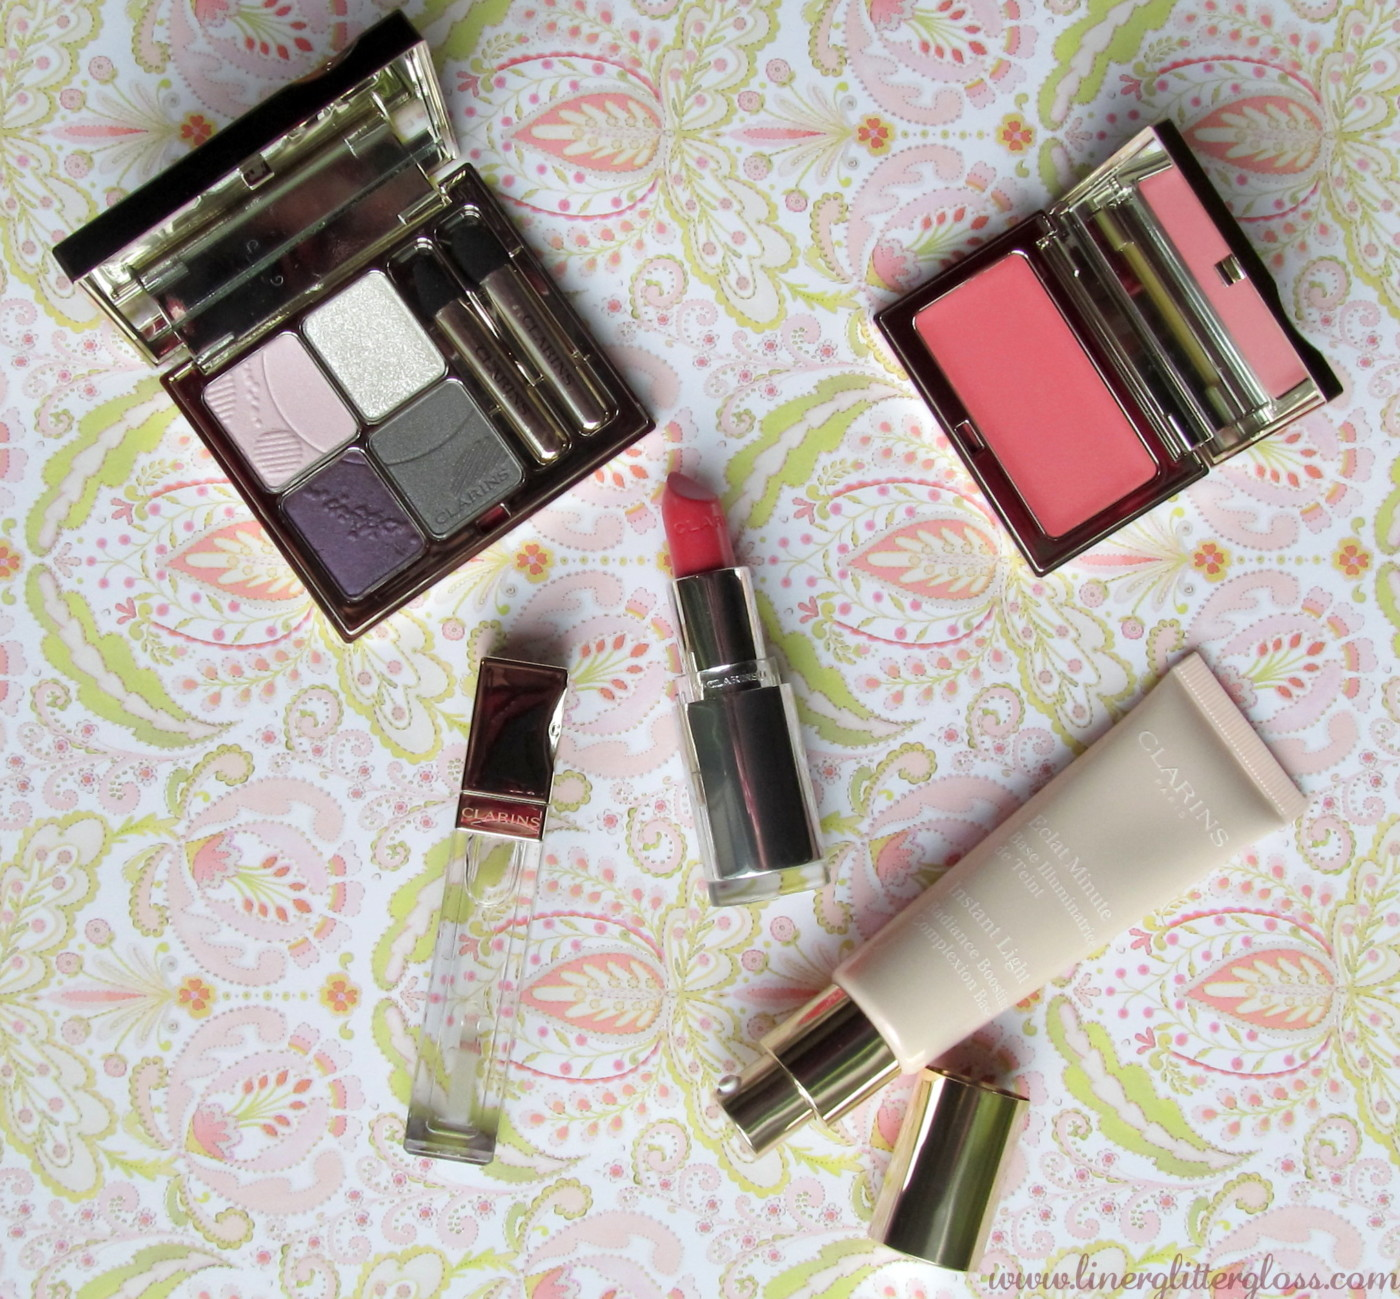 Clarins Opalescence Collection for Spring 2014 (Photos + Swatches)